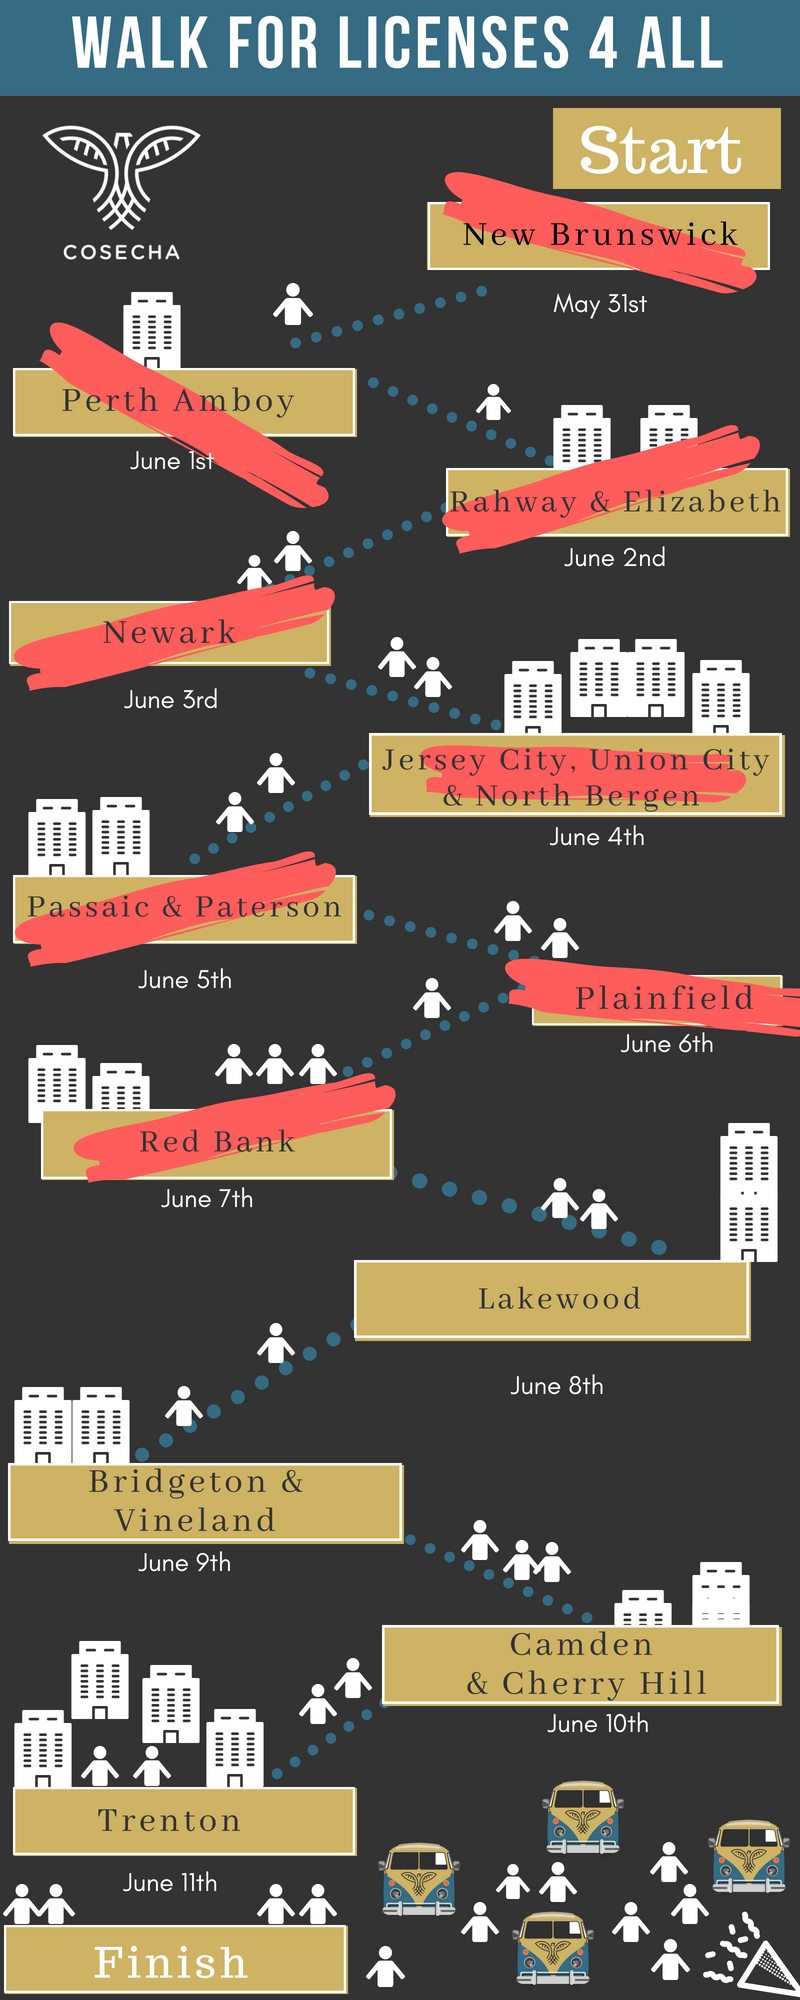 Join us along the way throughout the 11-day walk across New Jersey!Find all the actions and events for drivers liceneses happening in each city we pass through!   - Day 1 5/31/18 ThursdayNew Brunswick: Launch!https://www.facebook.com/events/228949091023063/ Day 2 6/1/18 FridayPerth AmboyRally and community meeting *click to join*Day 3 6/2/18 SaturdayRahway & ElizabethRally for the walkers- Rahway! *click to join*Rally for the walkers - Elizabeth! *click to join*Day 4 6/3/18 SundayNewarkDay 5 6/4/18 MondayMaplewoodDay 6 6/5/18 TuesdayPassaic & PatersonDay 7 6/6/18 WednesdayPlainfieldDay 8 6/7/18 ThursdayRed BankDay 9 6/8/18 FridayLakewoodDay 10 6/9/18 SaturdayBridgeton to VinelandDay 11 6/10/18 SundayCamden Day 12 6/11/18 MondayTrenton